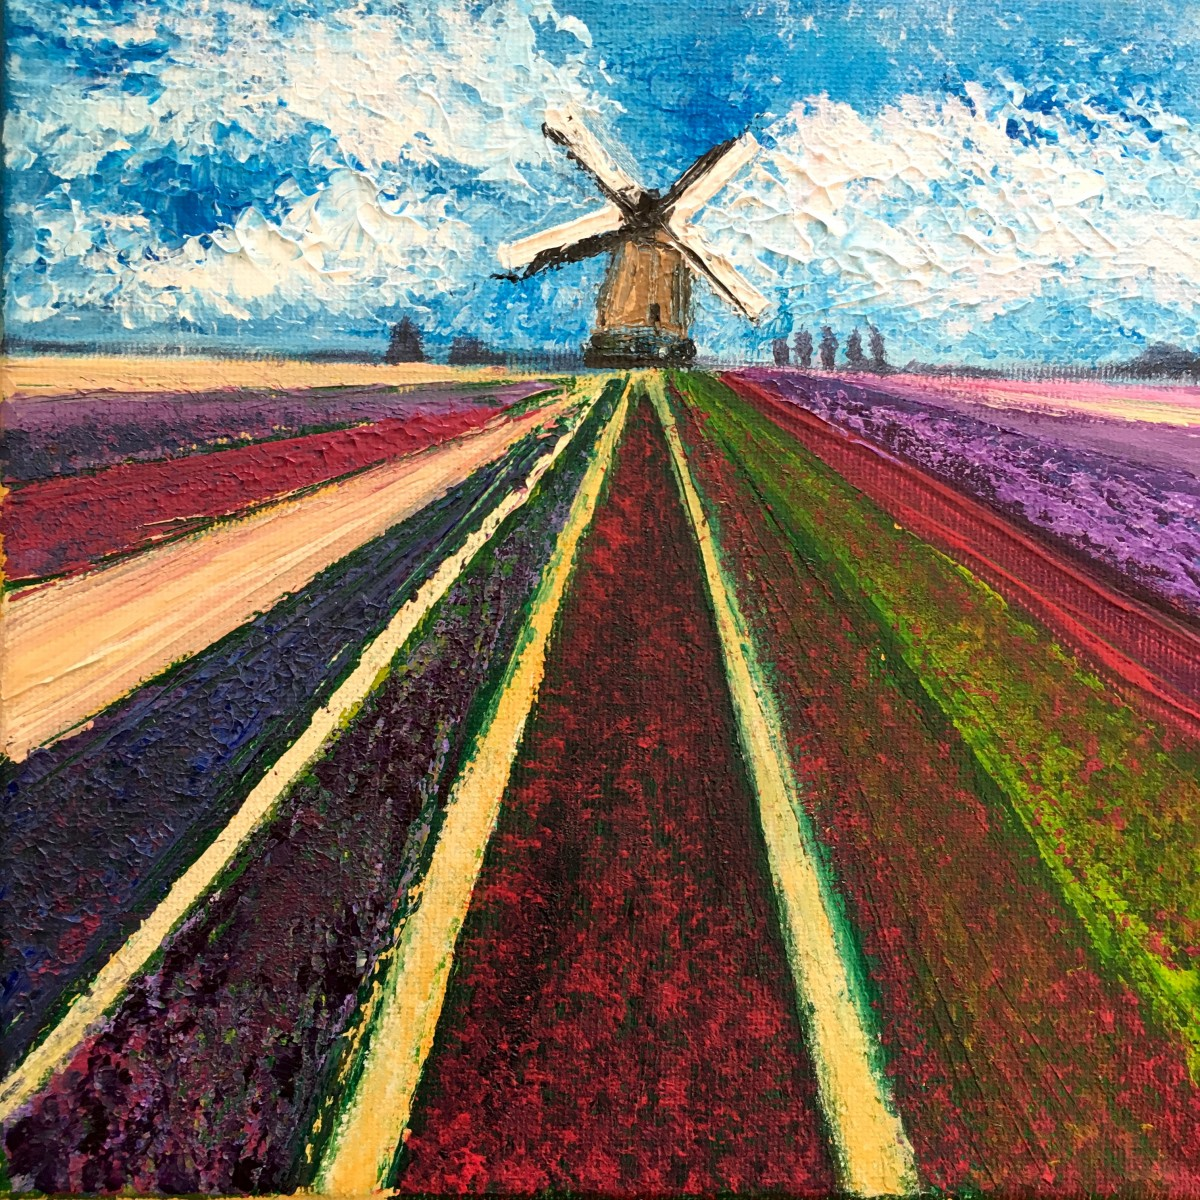 Spring in the Netherlands 20x20cm canvas, acrylics